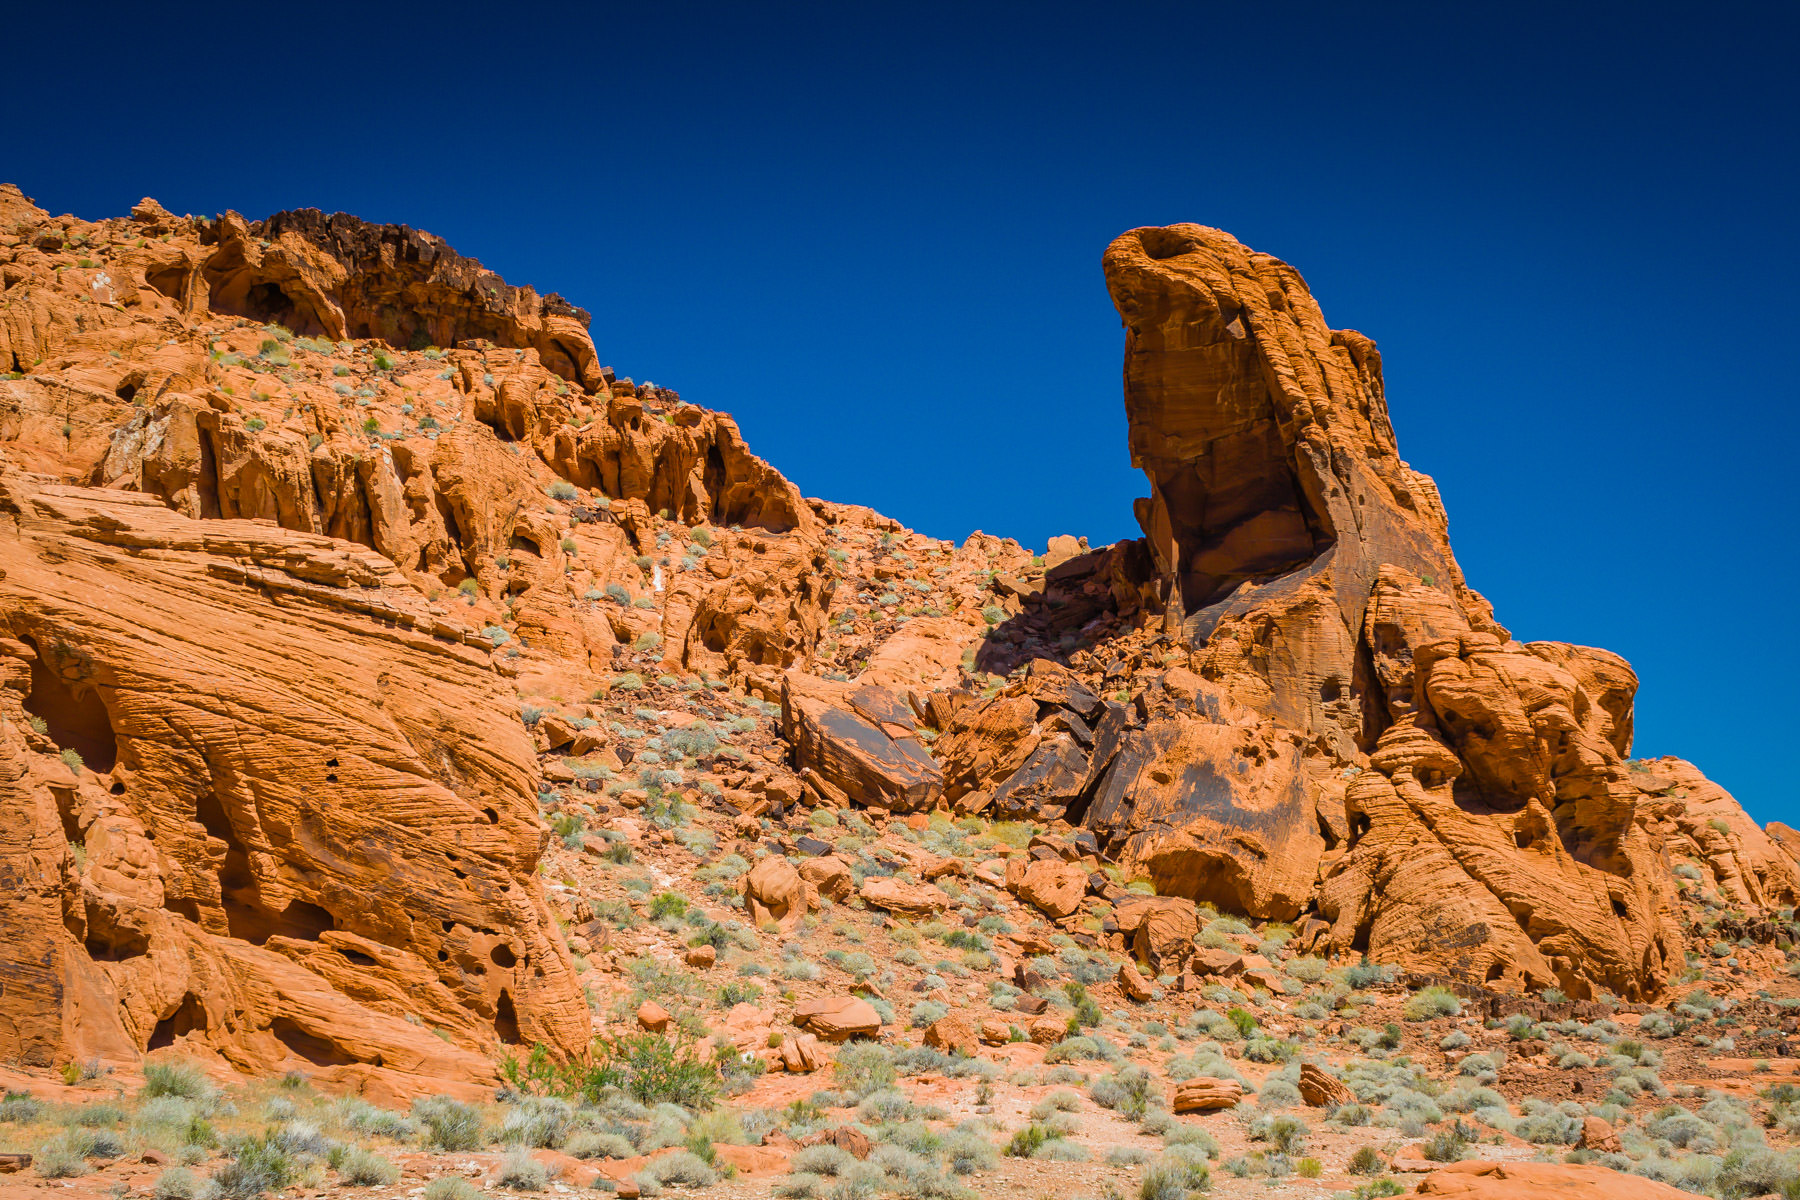 A red, rocky, desert landscape at Nevada's Valley of Fire State Park.